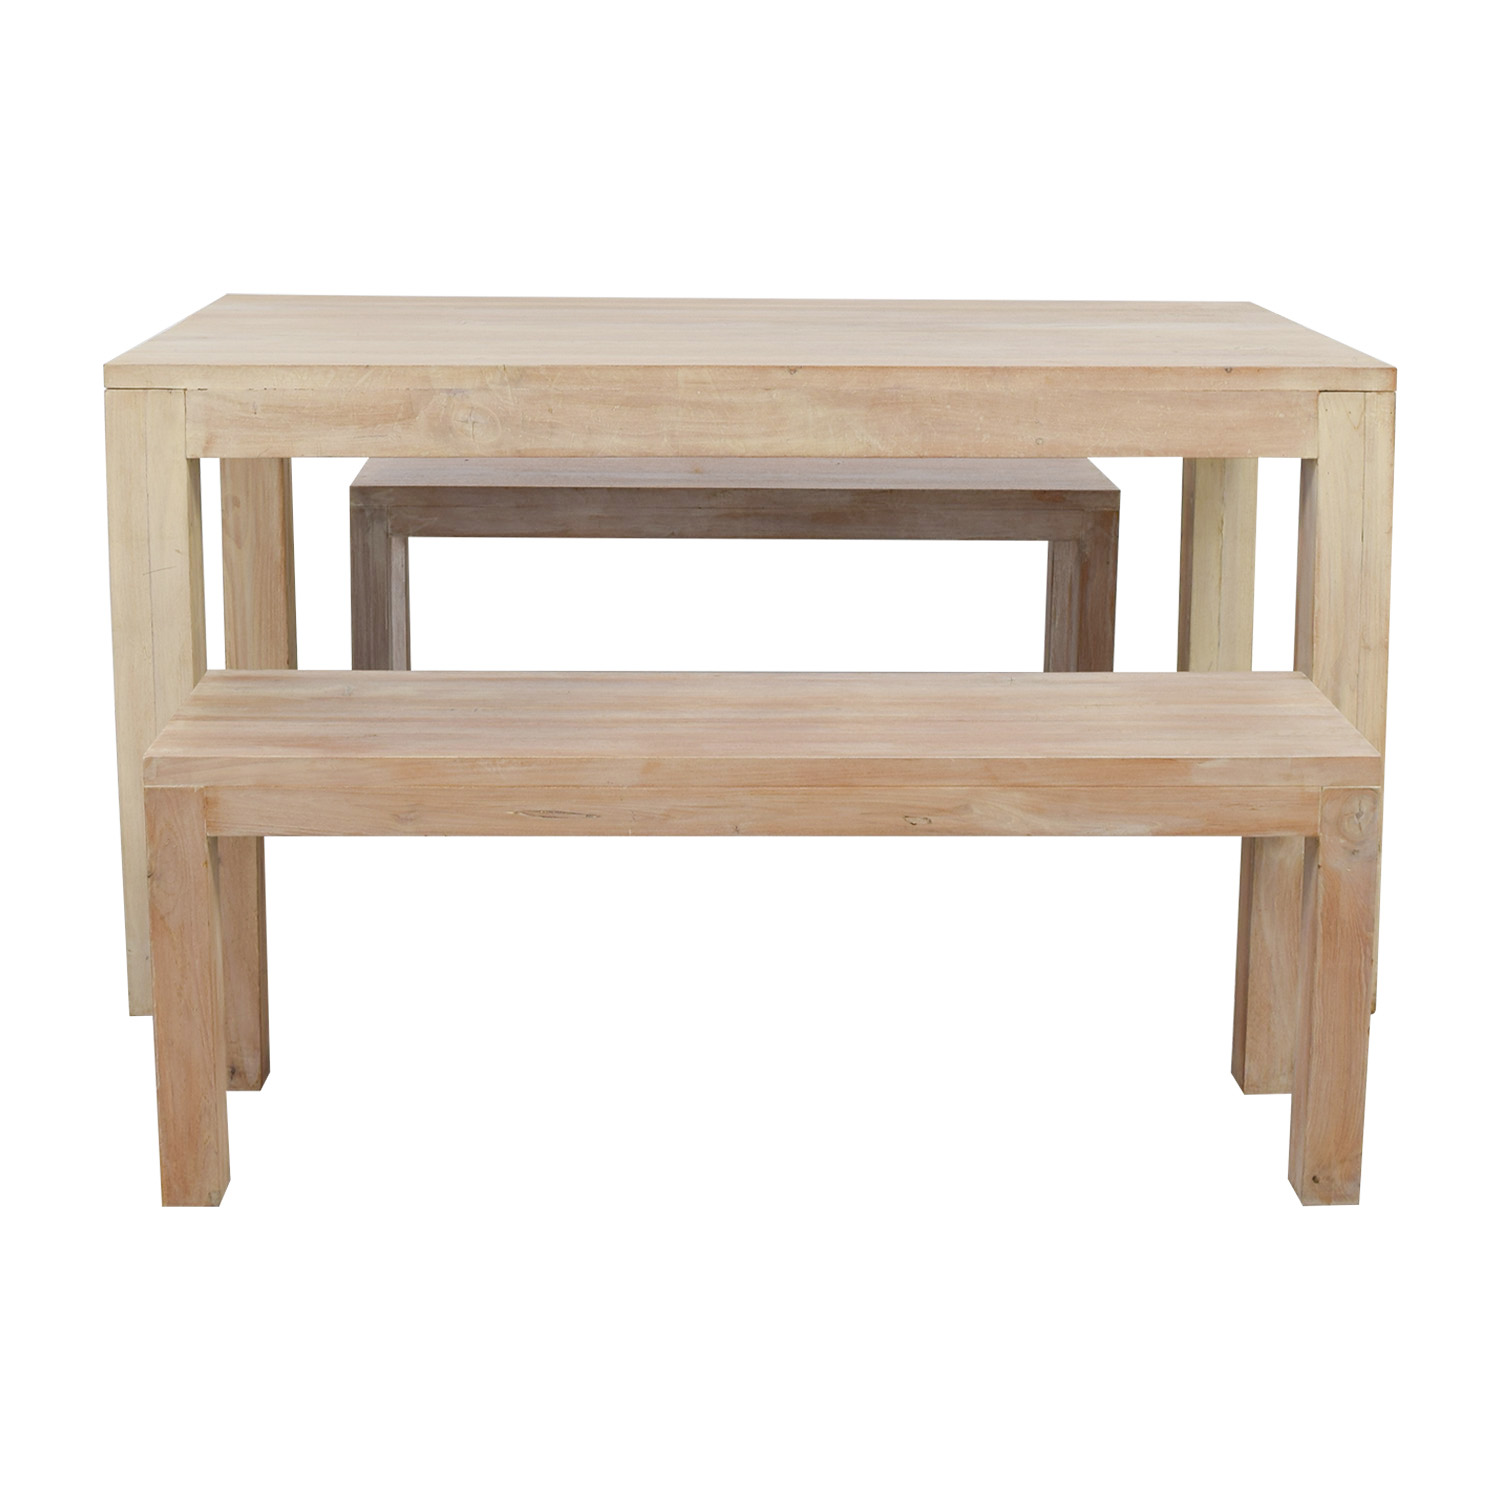 buy TREE Hong Kong Reclaimed Raw Oak Wood Dining Table with Benches TREE Hong Kong Sofas